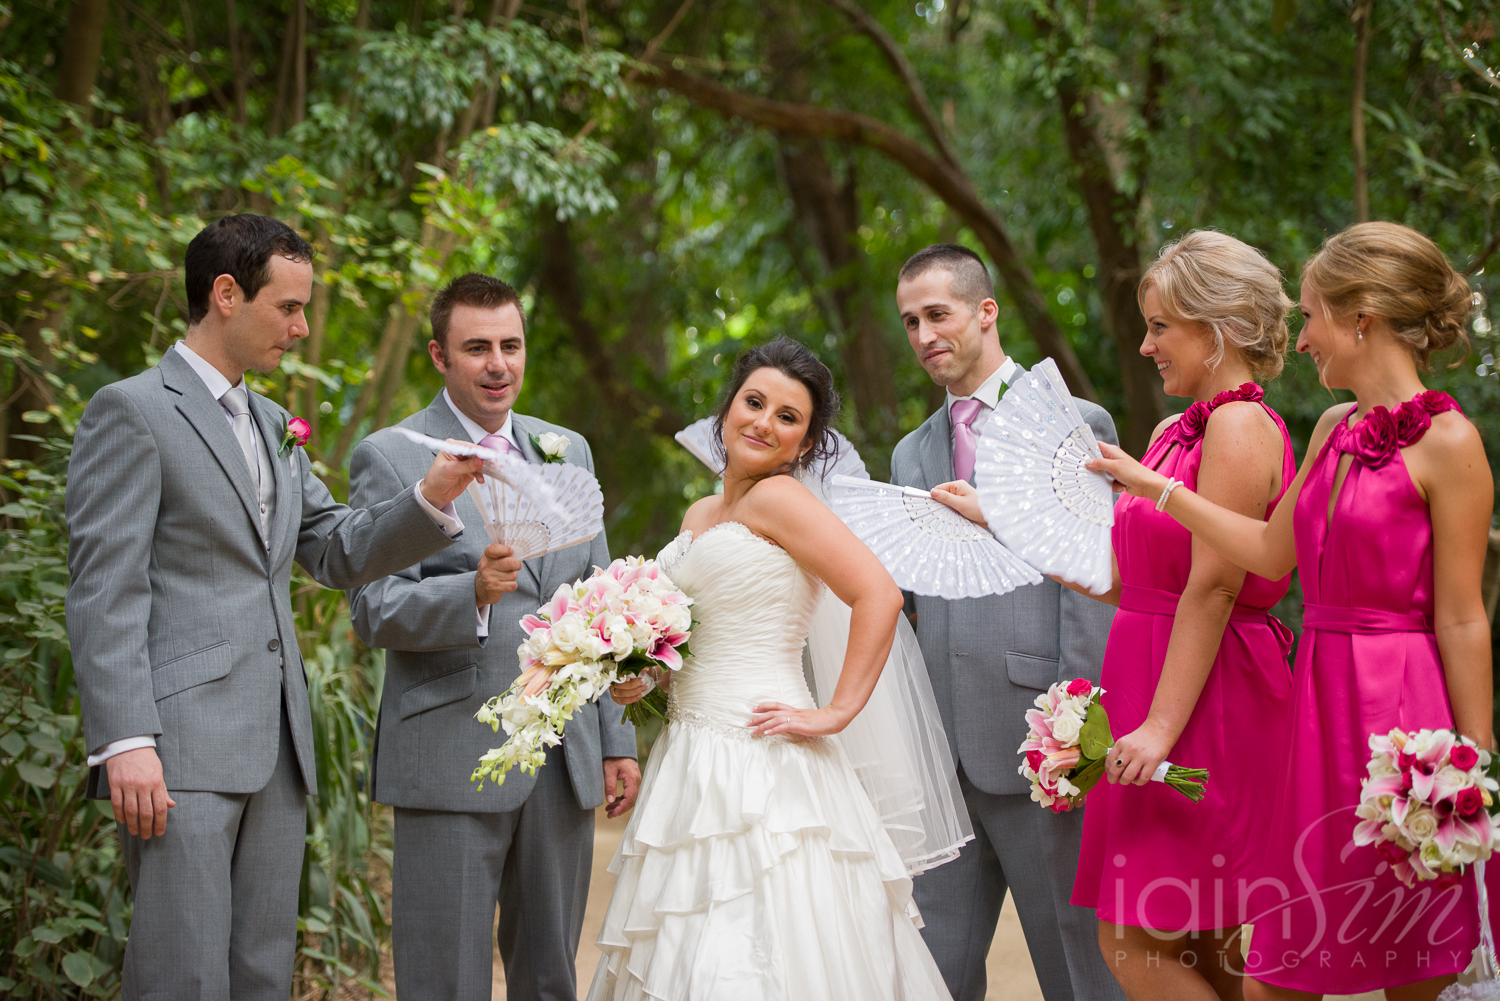 wpid-Narelle-and-Luke-at-the-Melbourne-Zoo-by-Iain-Sim-Photography_027.jpg